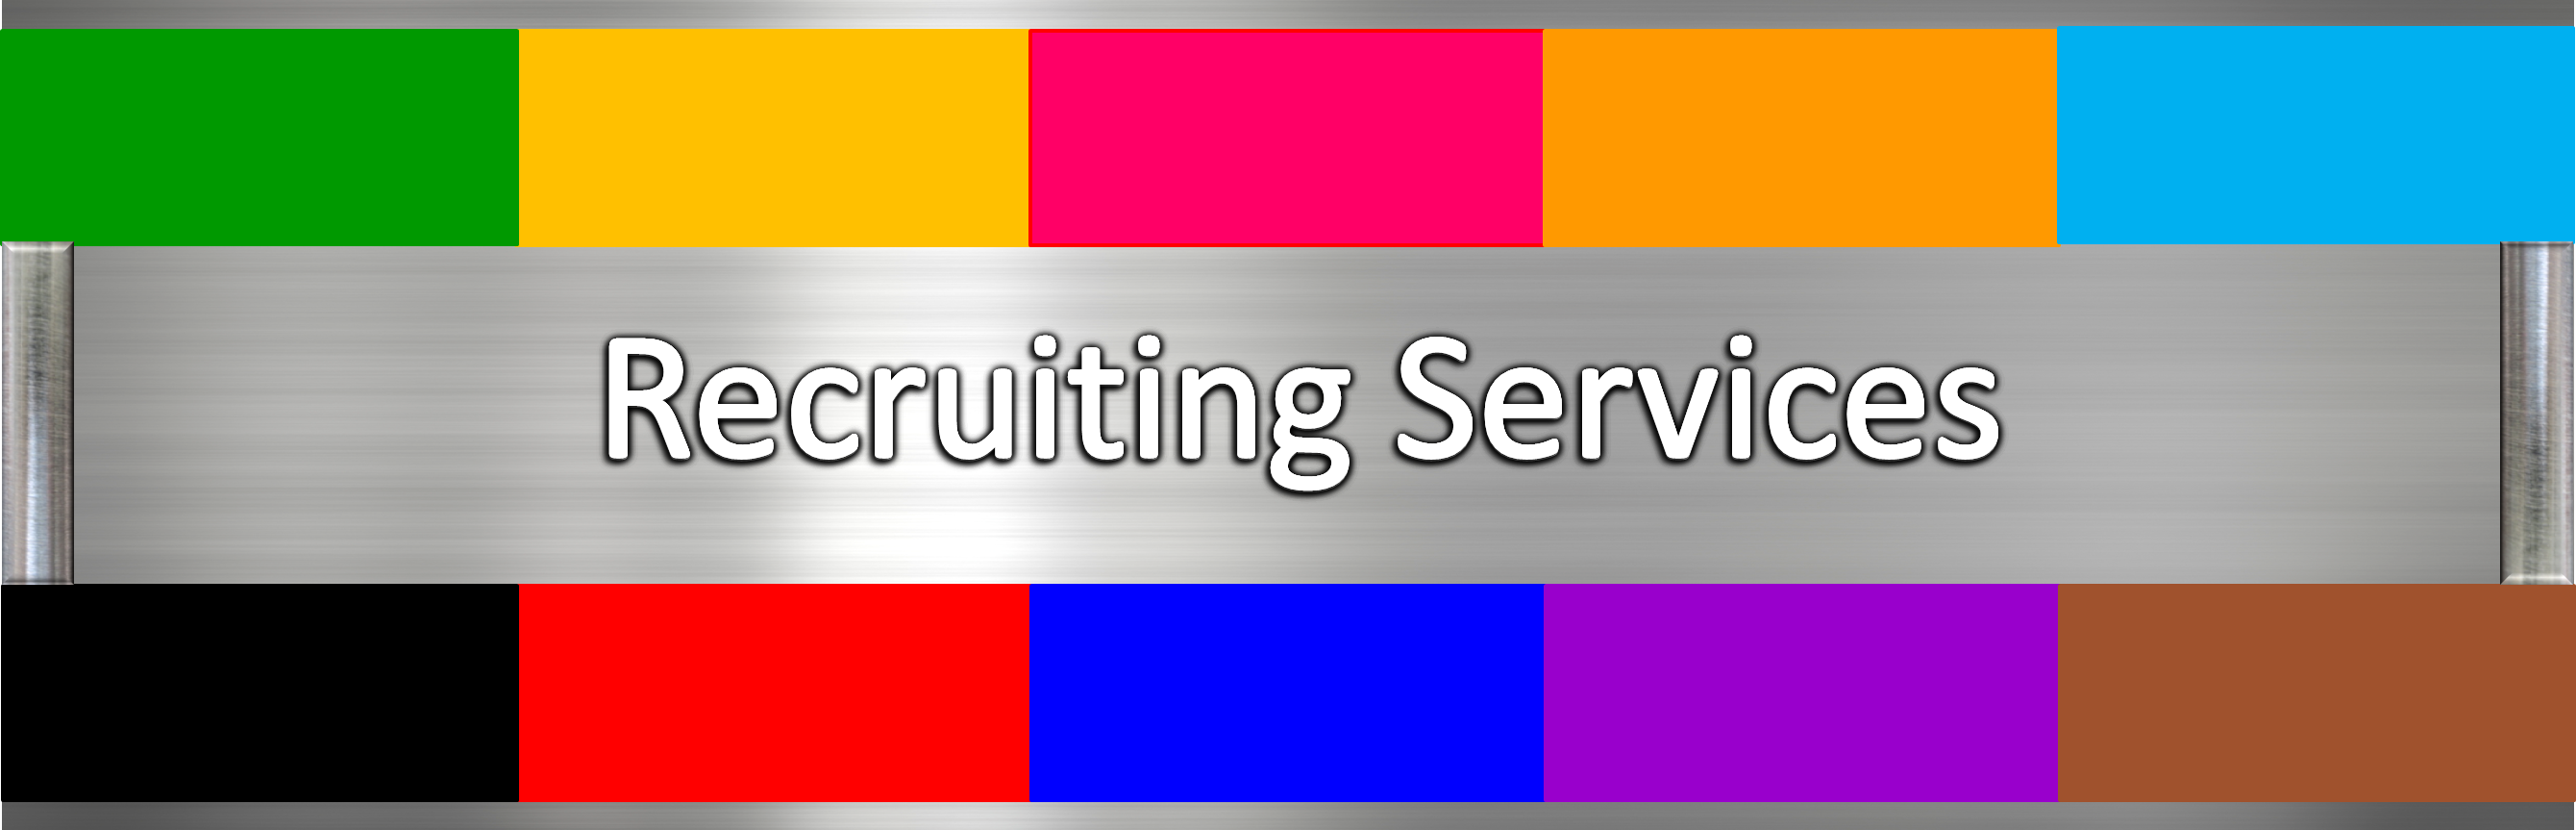 Recruiting Image - for Home Page (Version 2)